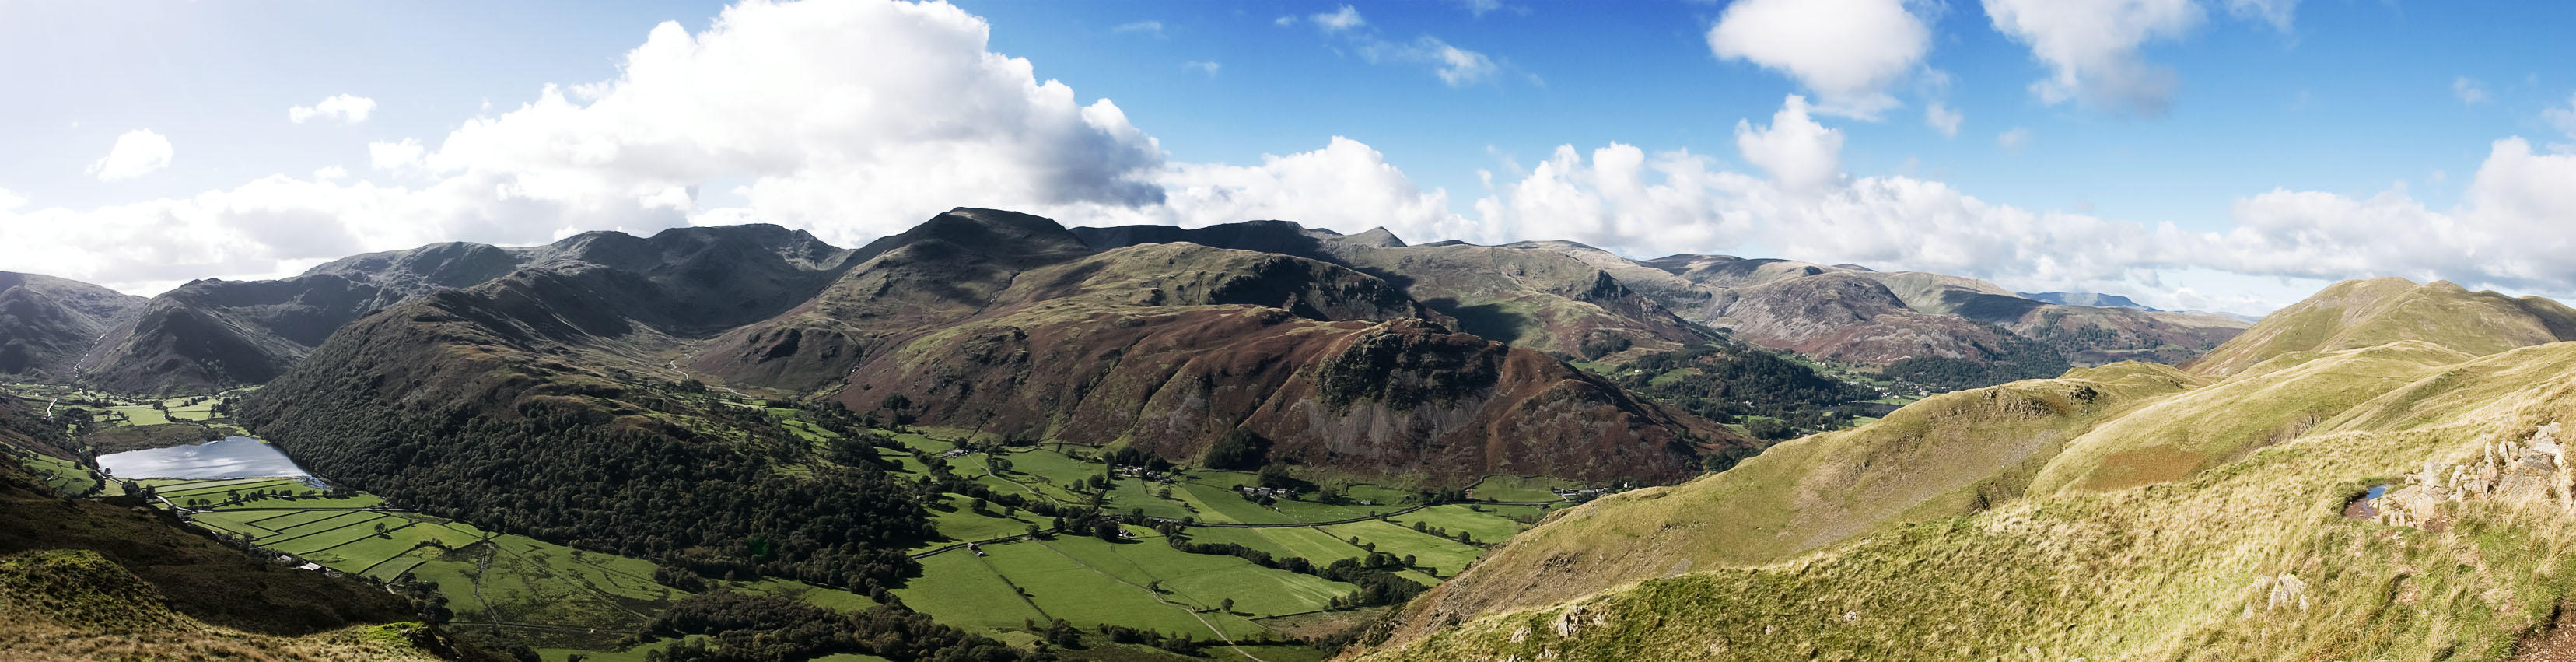 Patterdale from Angletarn Pikes